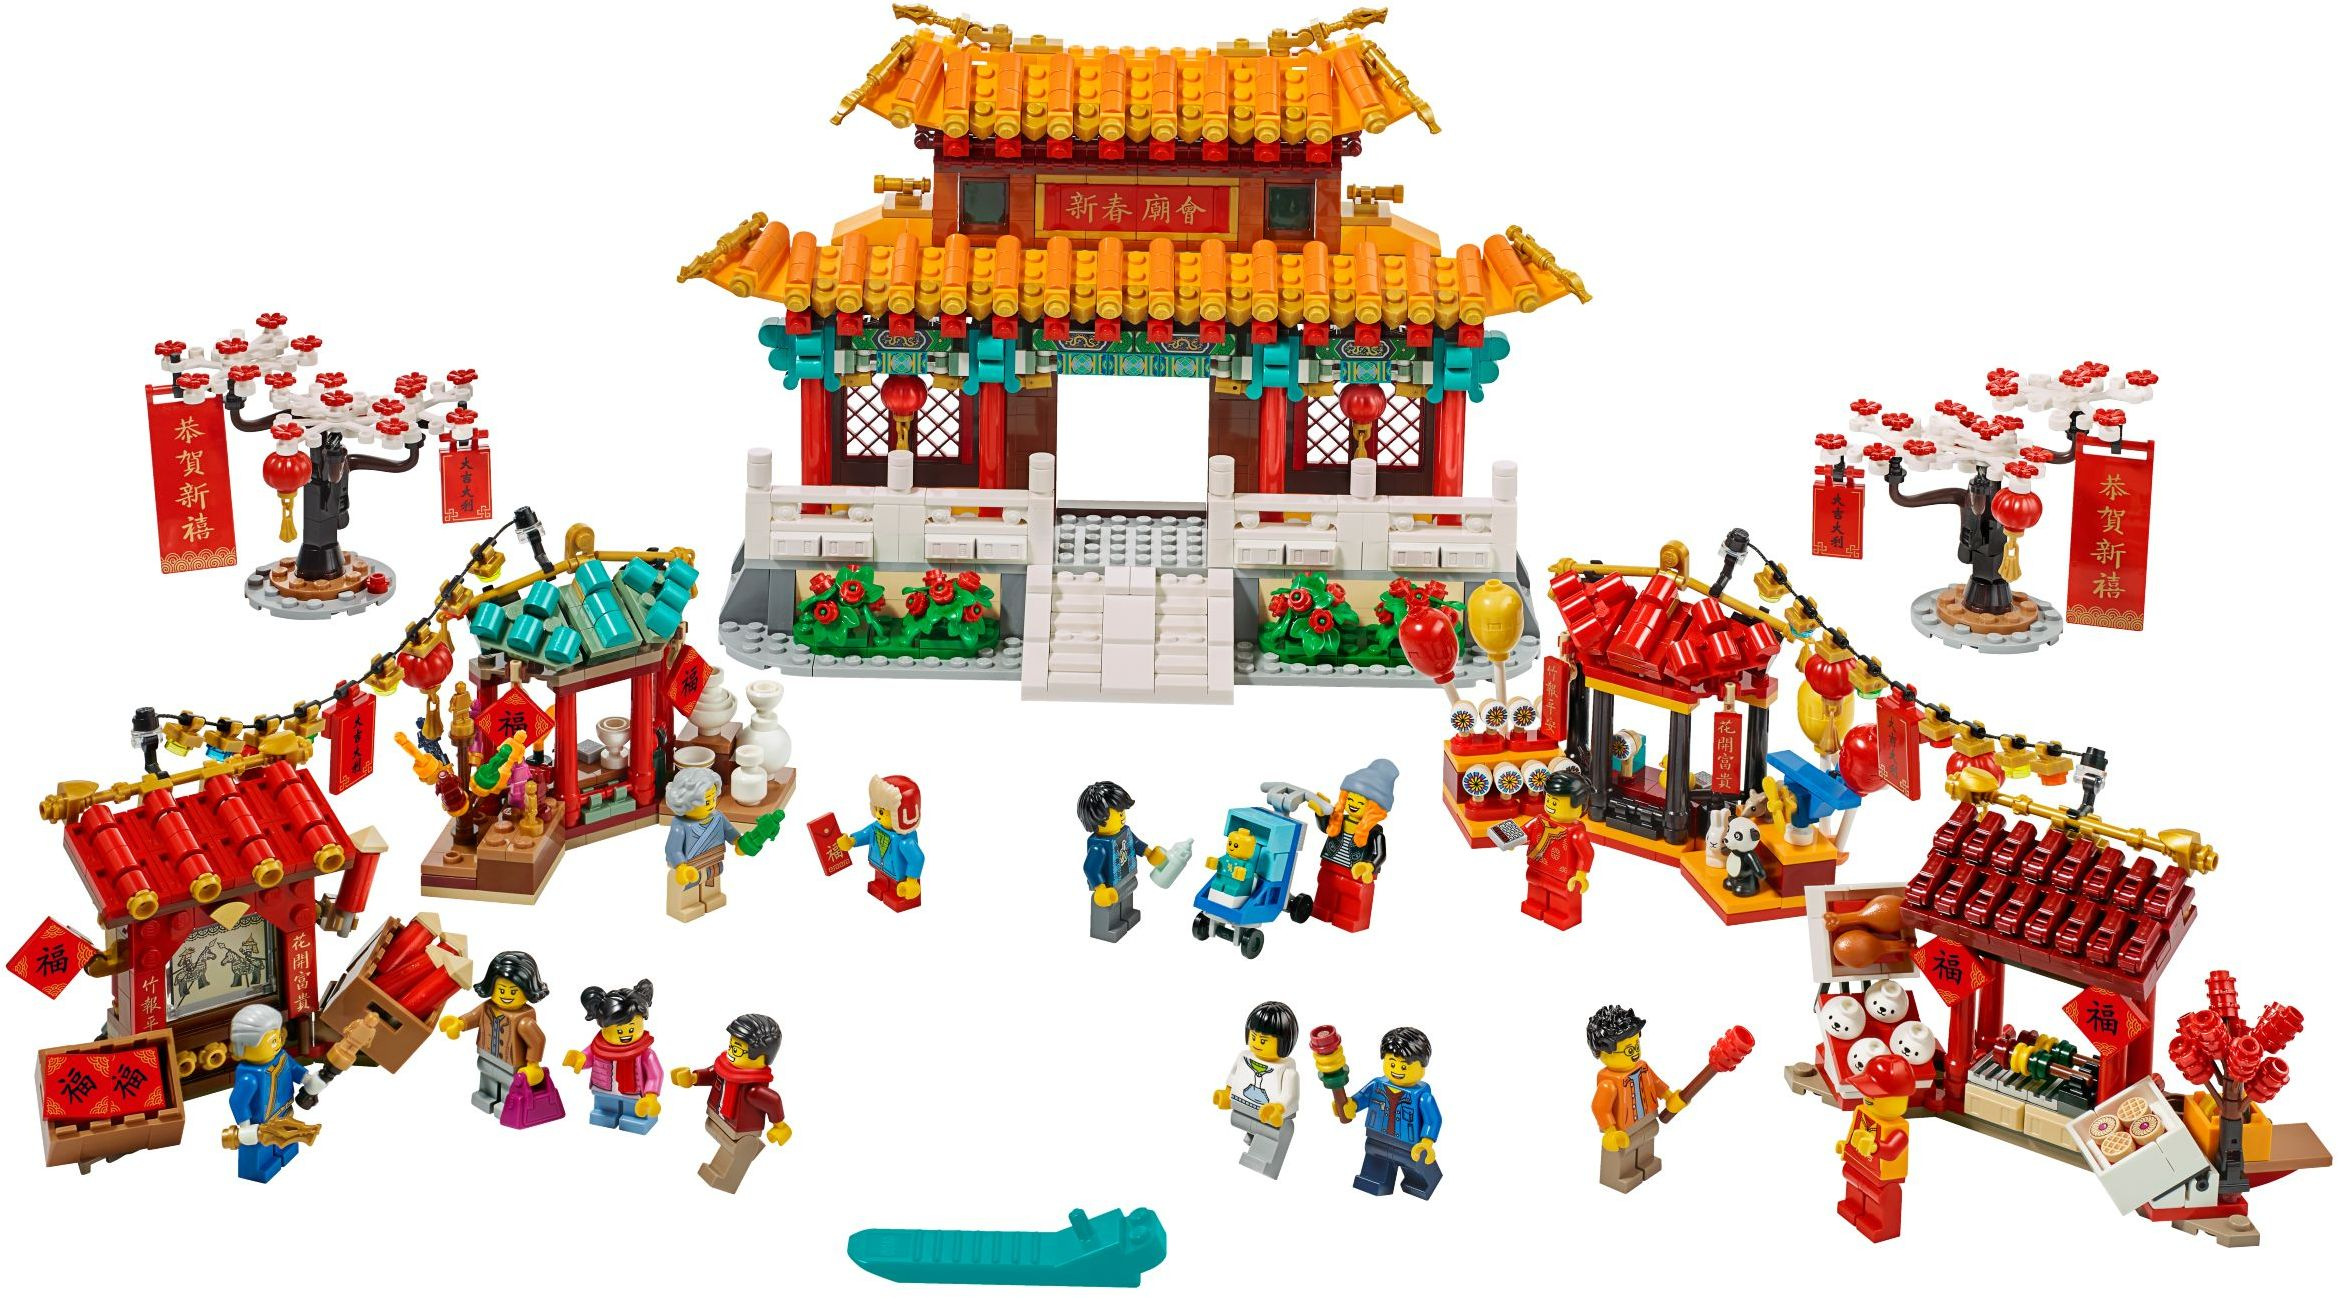 2020 Chinese New Year sets will be available to all